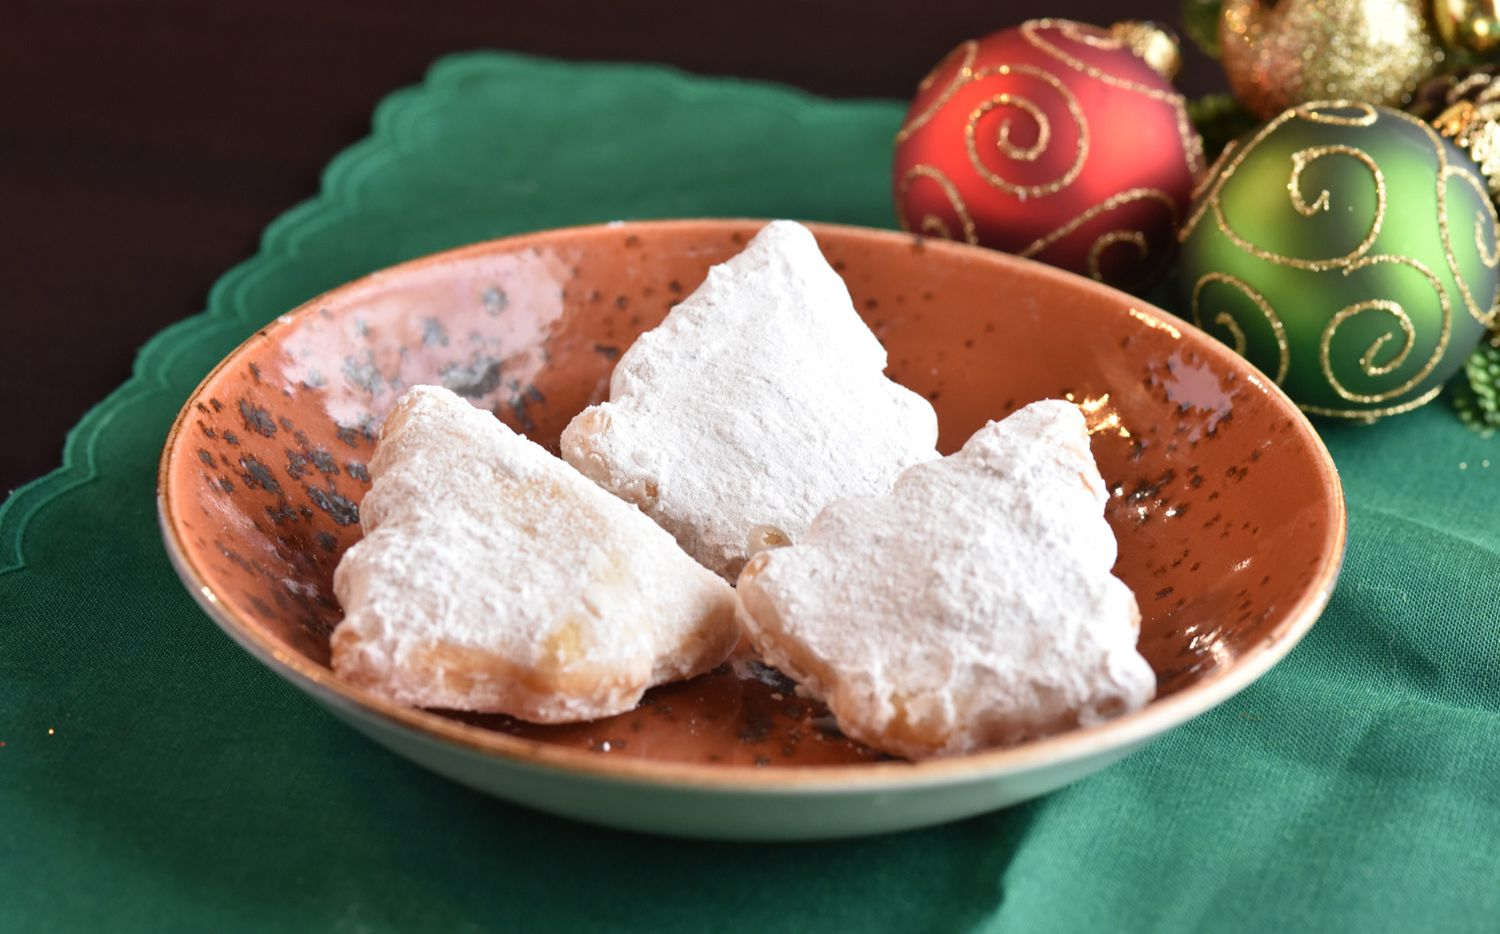 Sopapillas are available for free at El Fenix near Christmas Day.